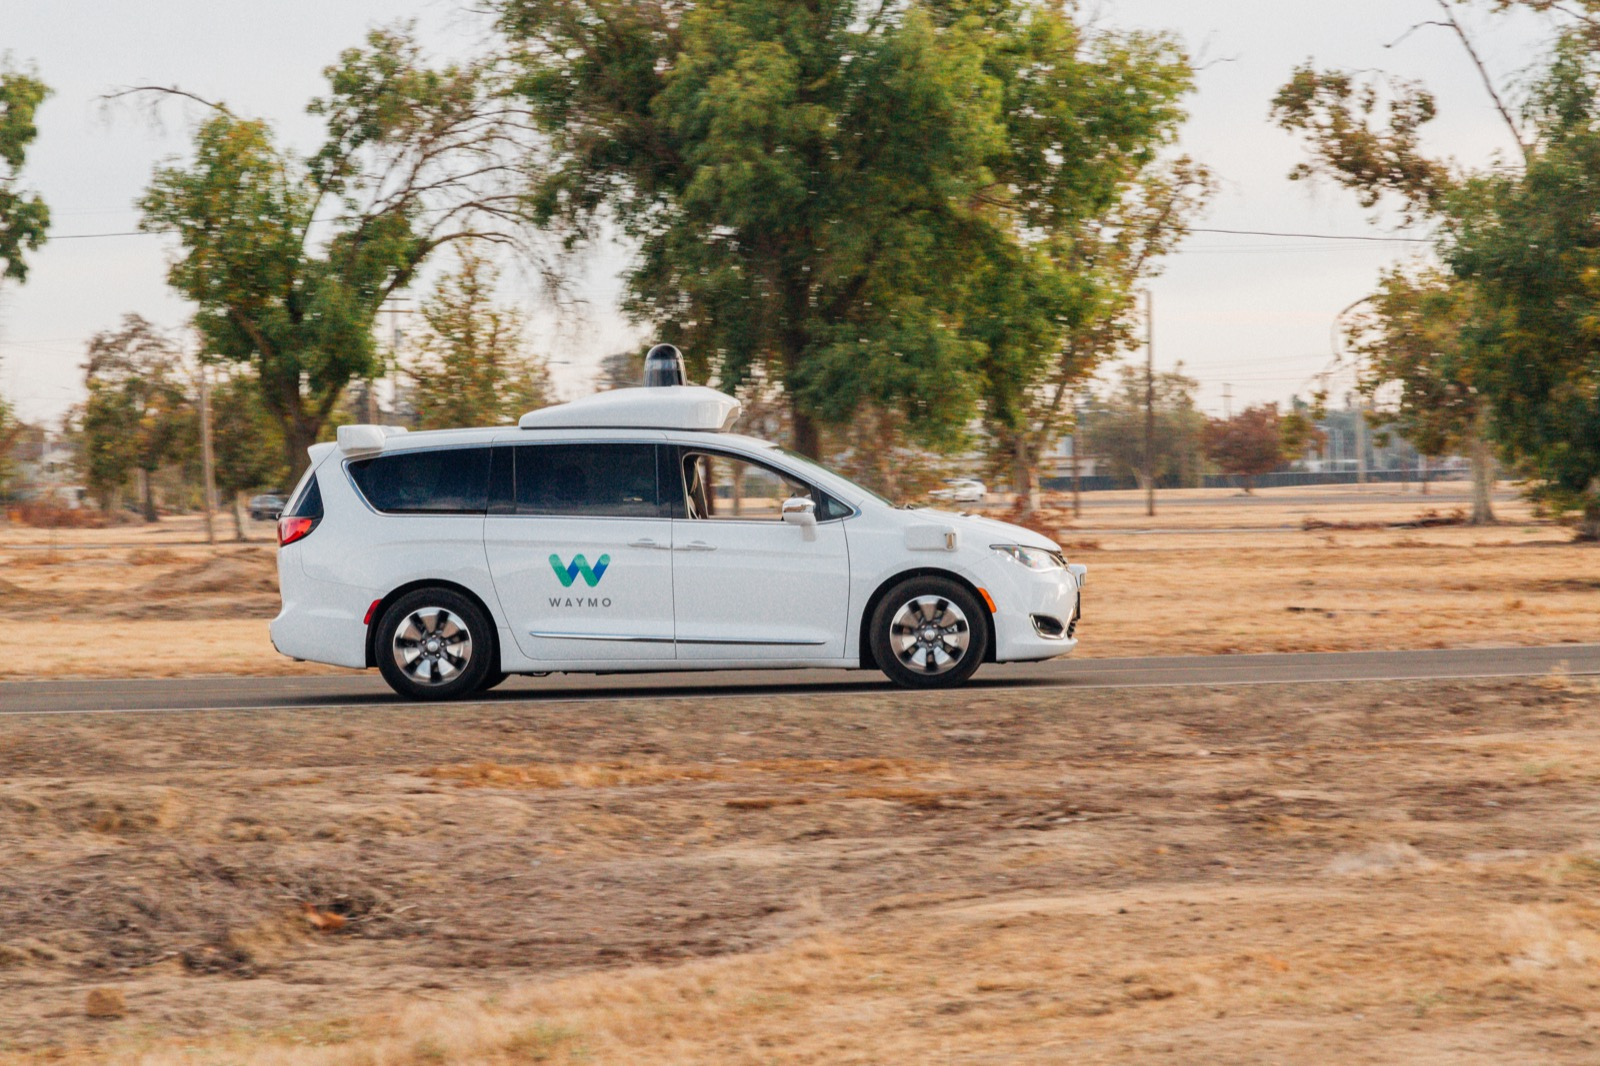 Waymo to get more than 60,000 cars from Fiat Chrysler for robotaxis